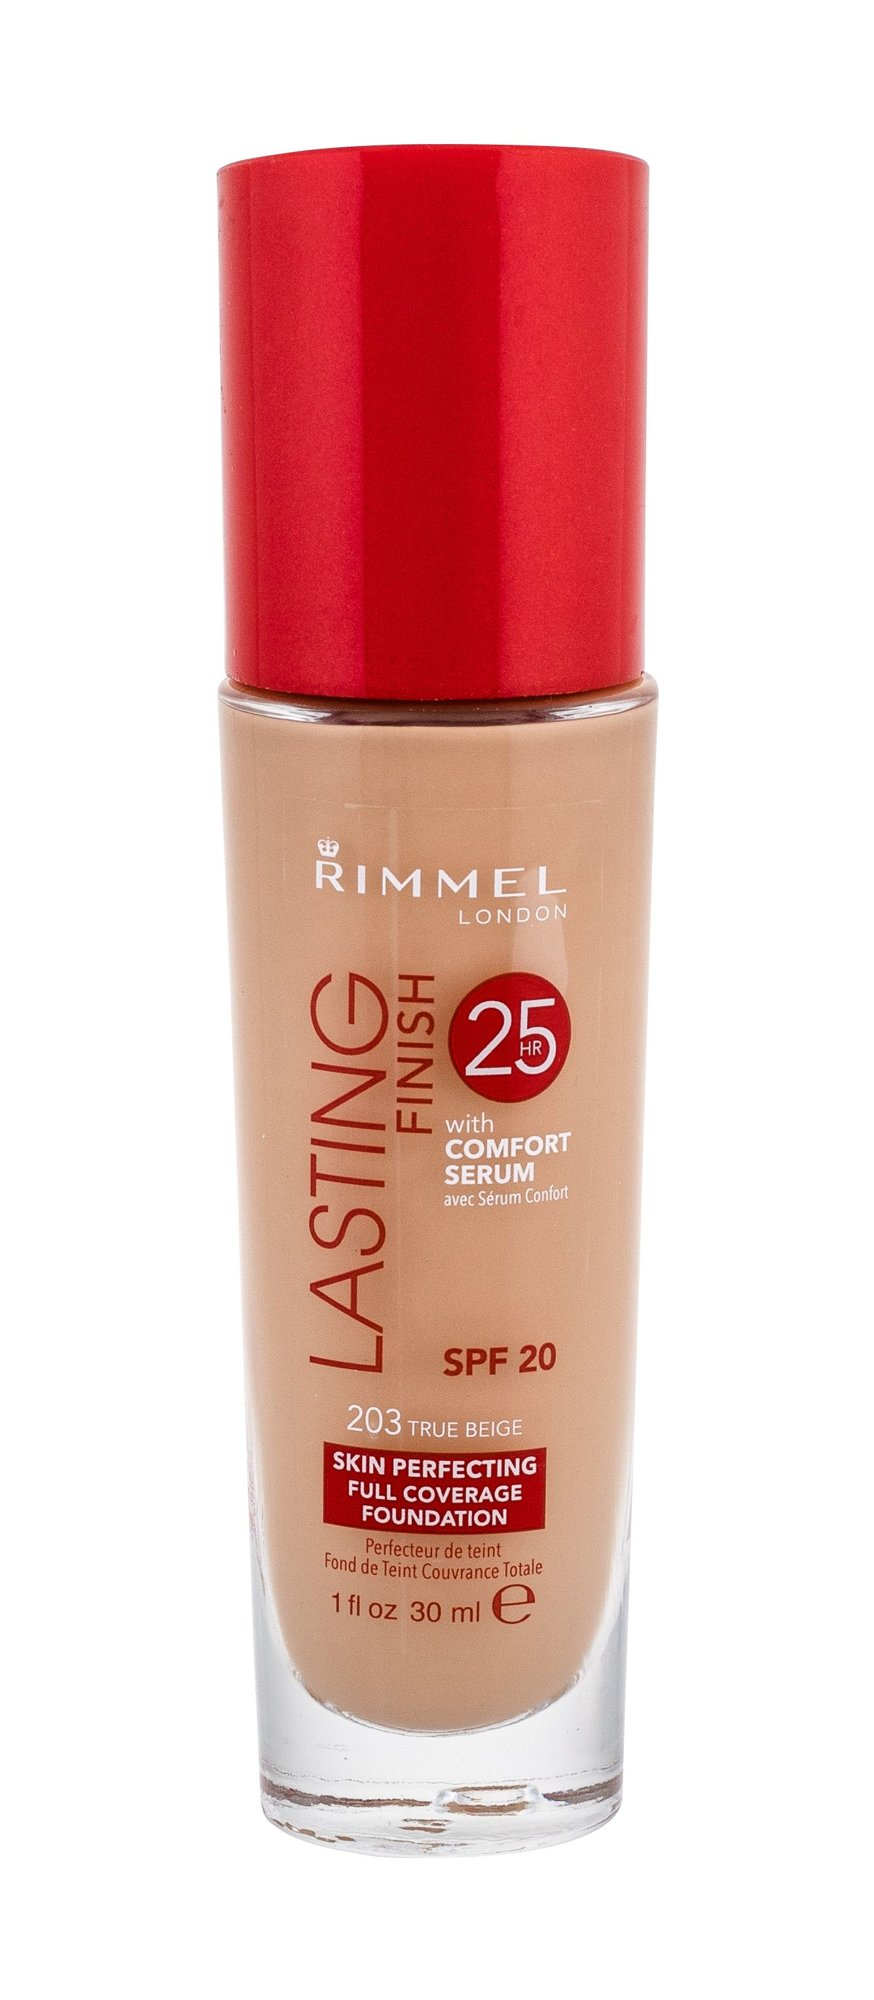 Rimmel London Lasting Finish 25h Foundation Cosmetic 30ml 203 True Beige